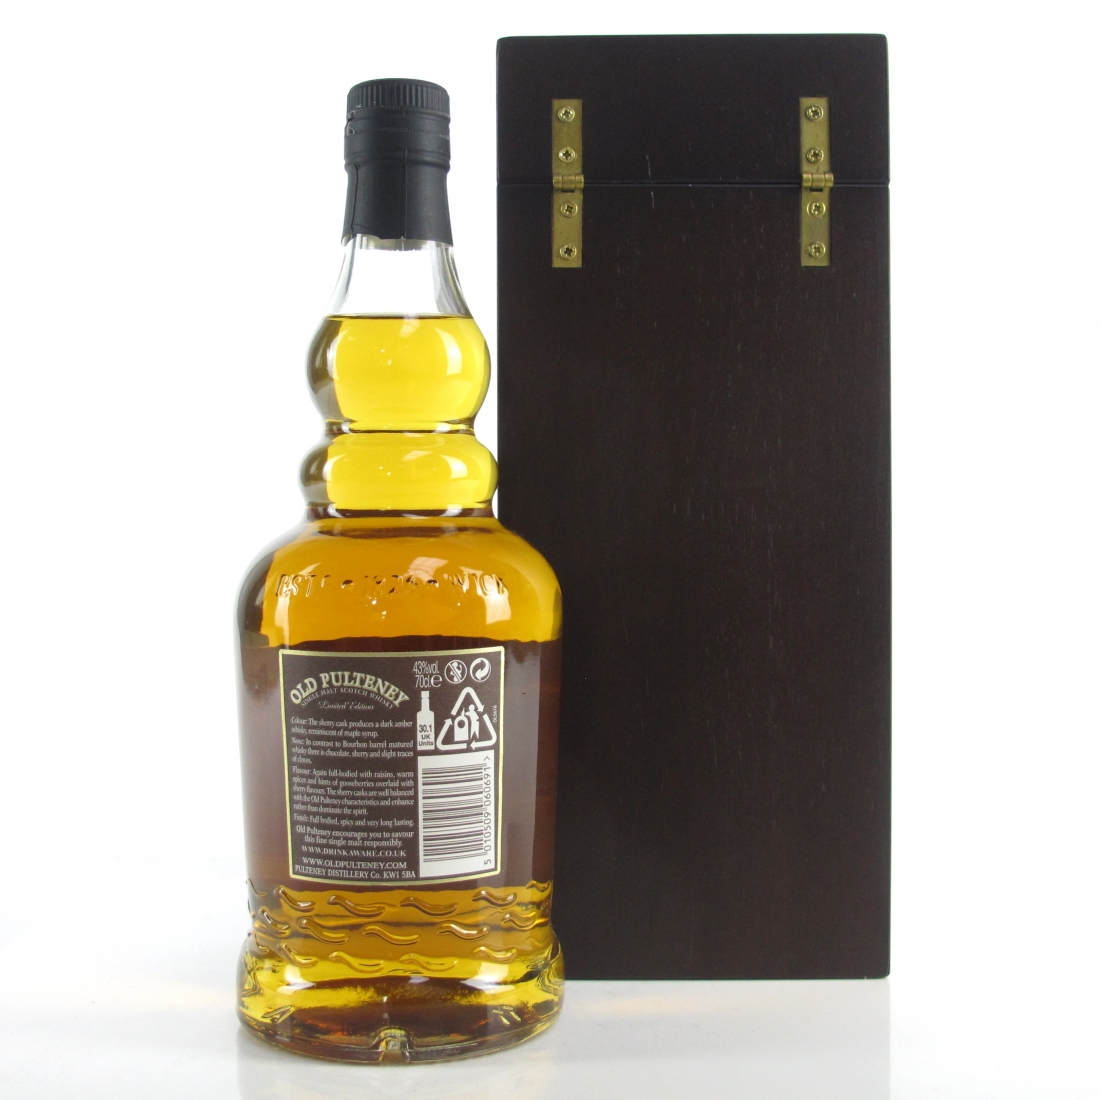 Old Pulteney 23 Year Old Sherry Cask